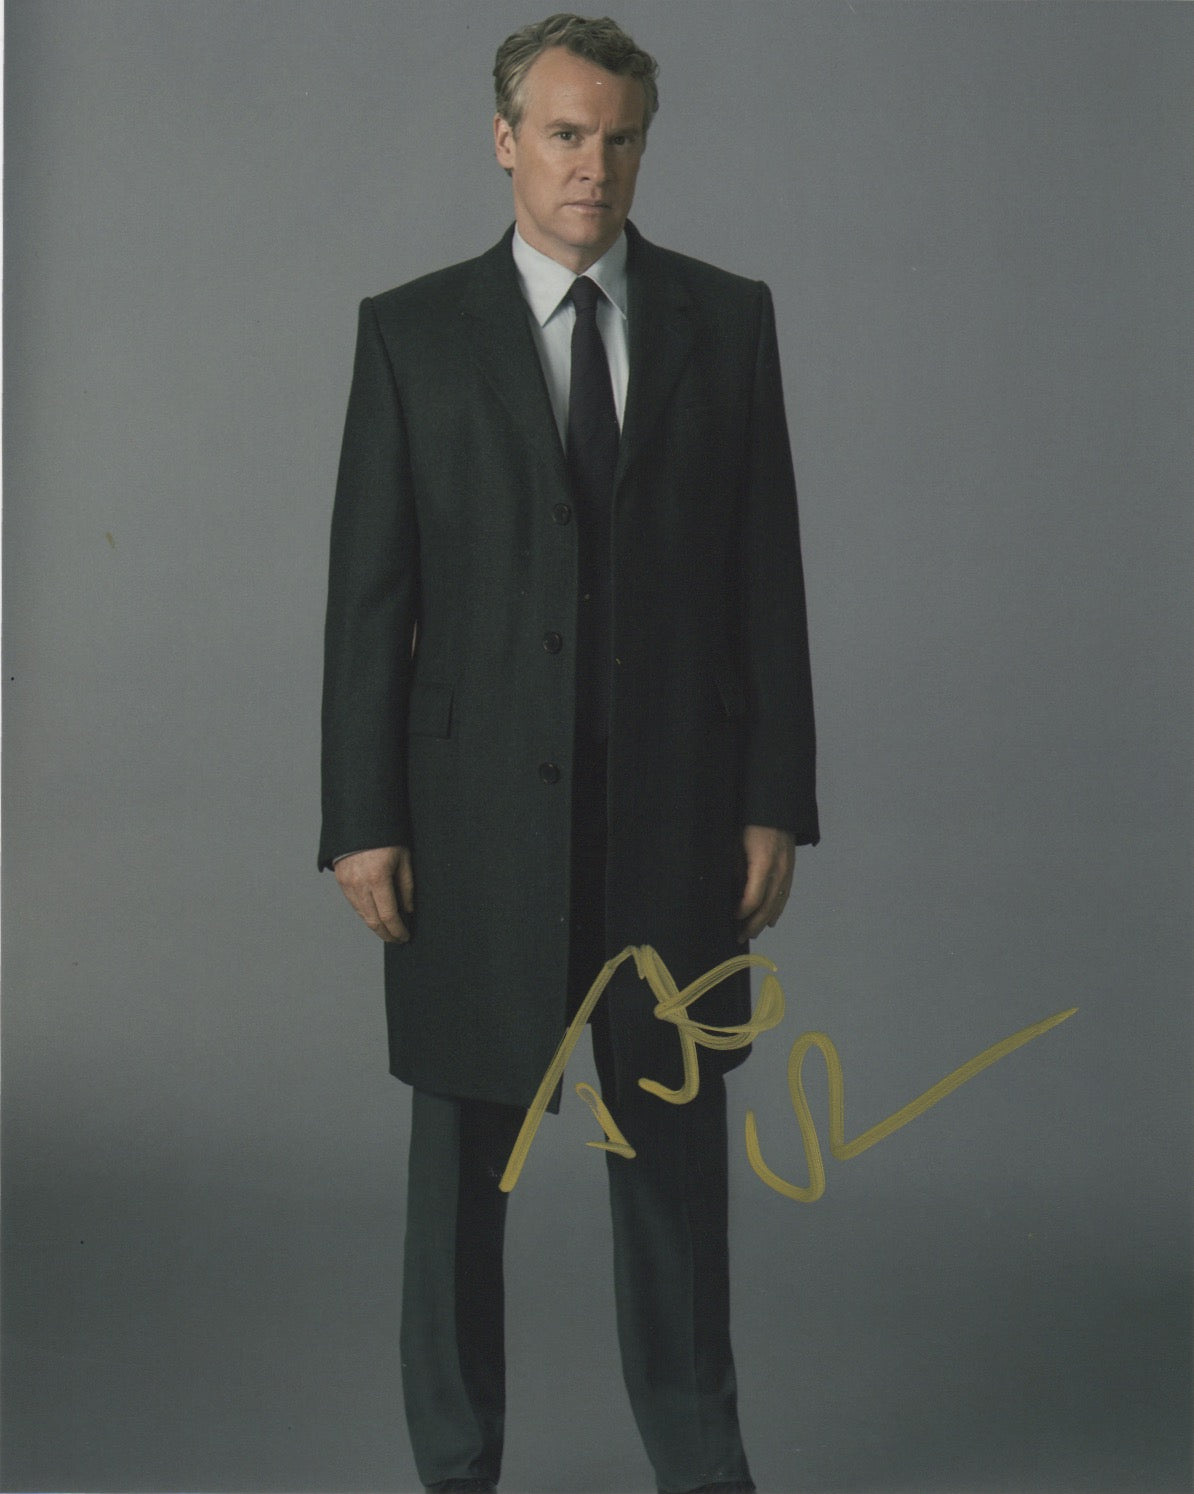 Tate Donovan Signed Autograph 8x10 Photo #3 - Outlaw Hobbies Authentic Autographs